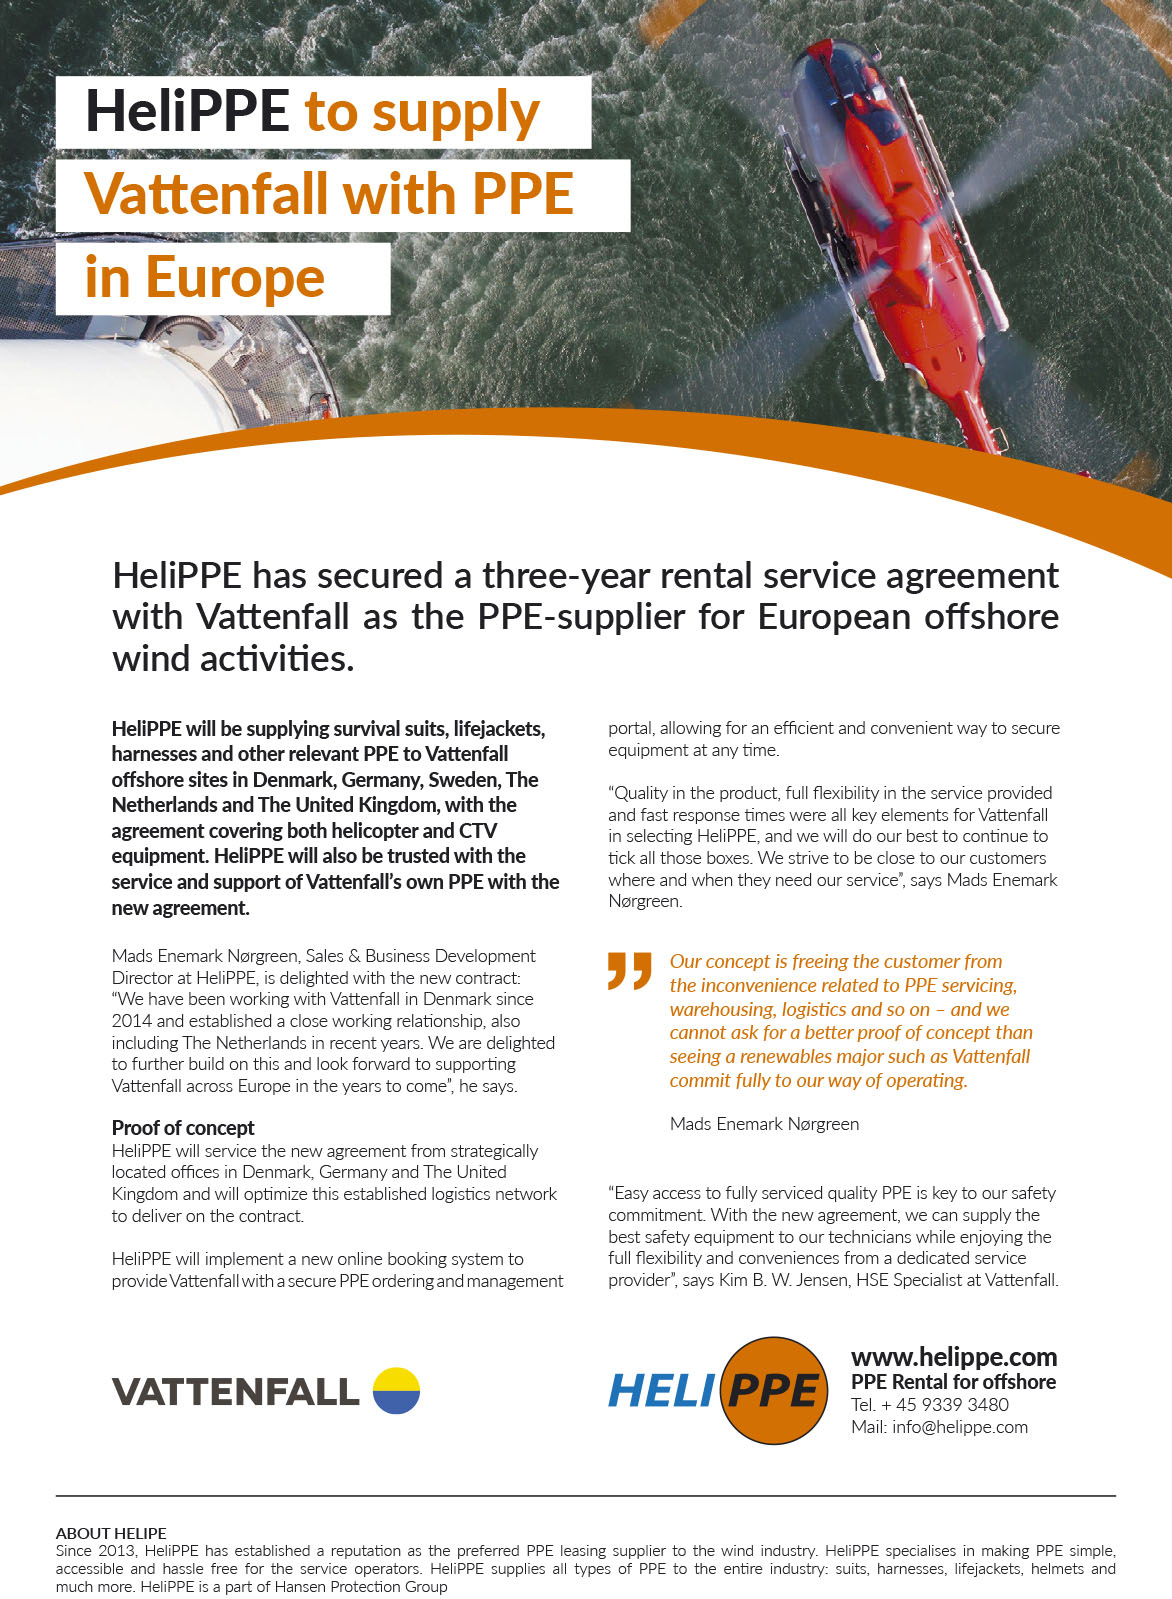 HeliPPE Vattenfall Article